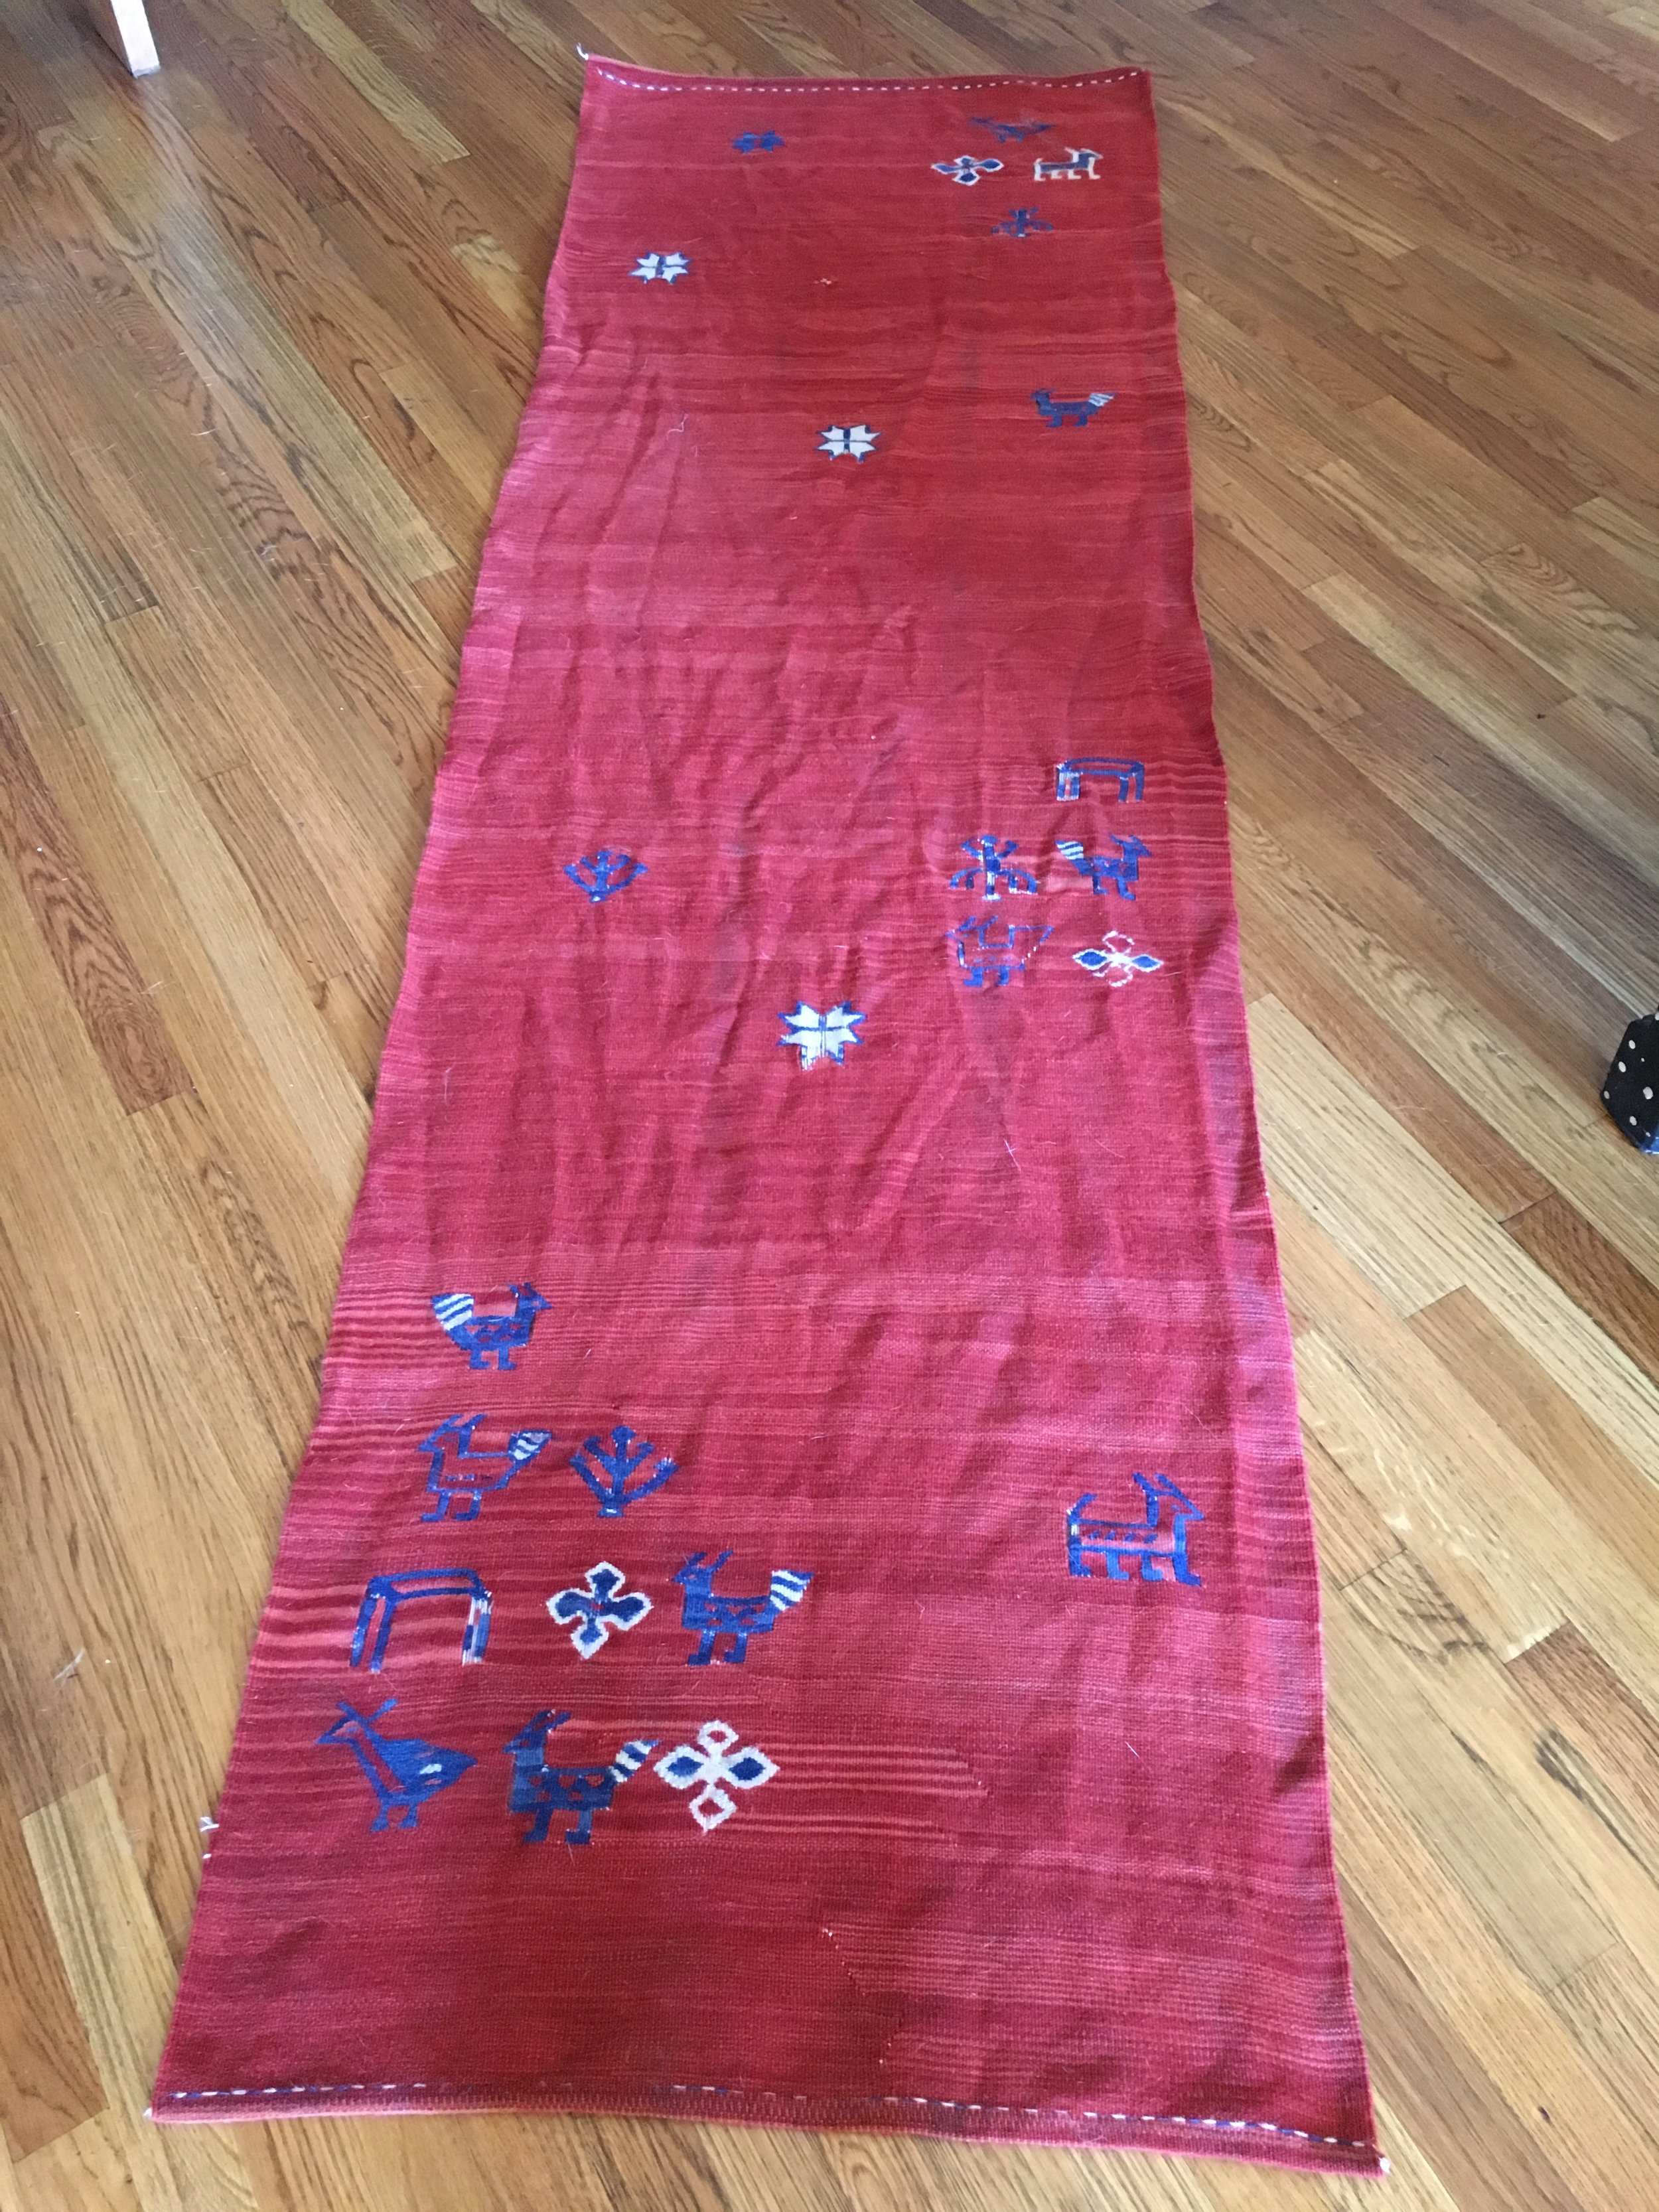 Wool has memory and the rug will flatten more as it dries. Do dry it flat if you can. Hanging over a rod as it dries can make a crease that is hard to get out. You CAN iron your rug. Spritz with a bit of water and use a pressing cloth.